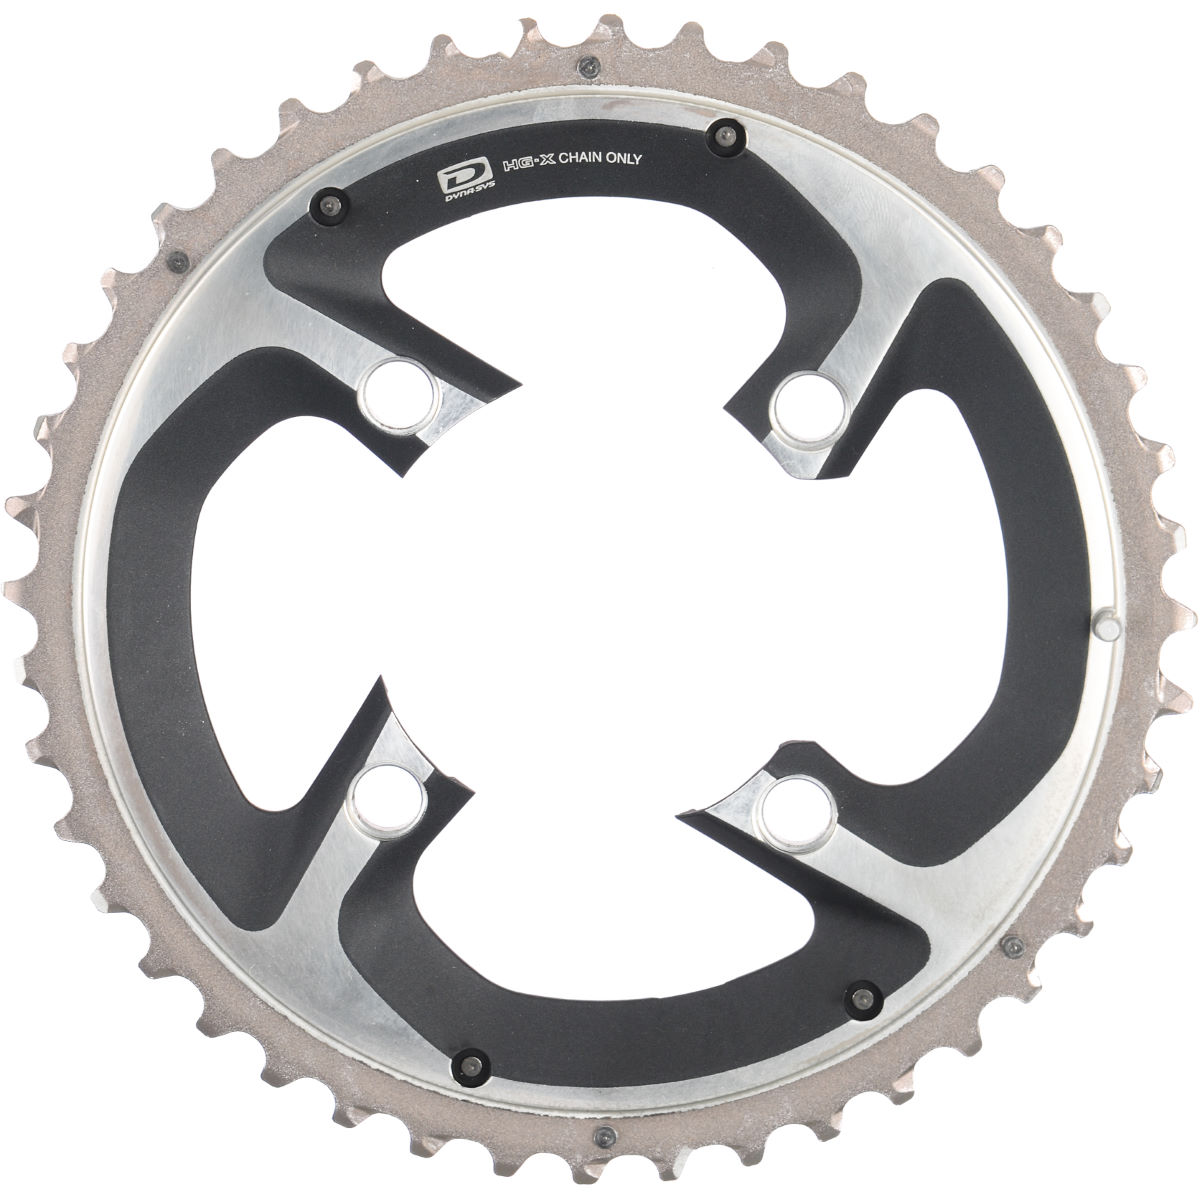 Plateau double Shimano XTR FCM985 (10 vitesses) - 44t 10 Speed